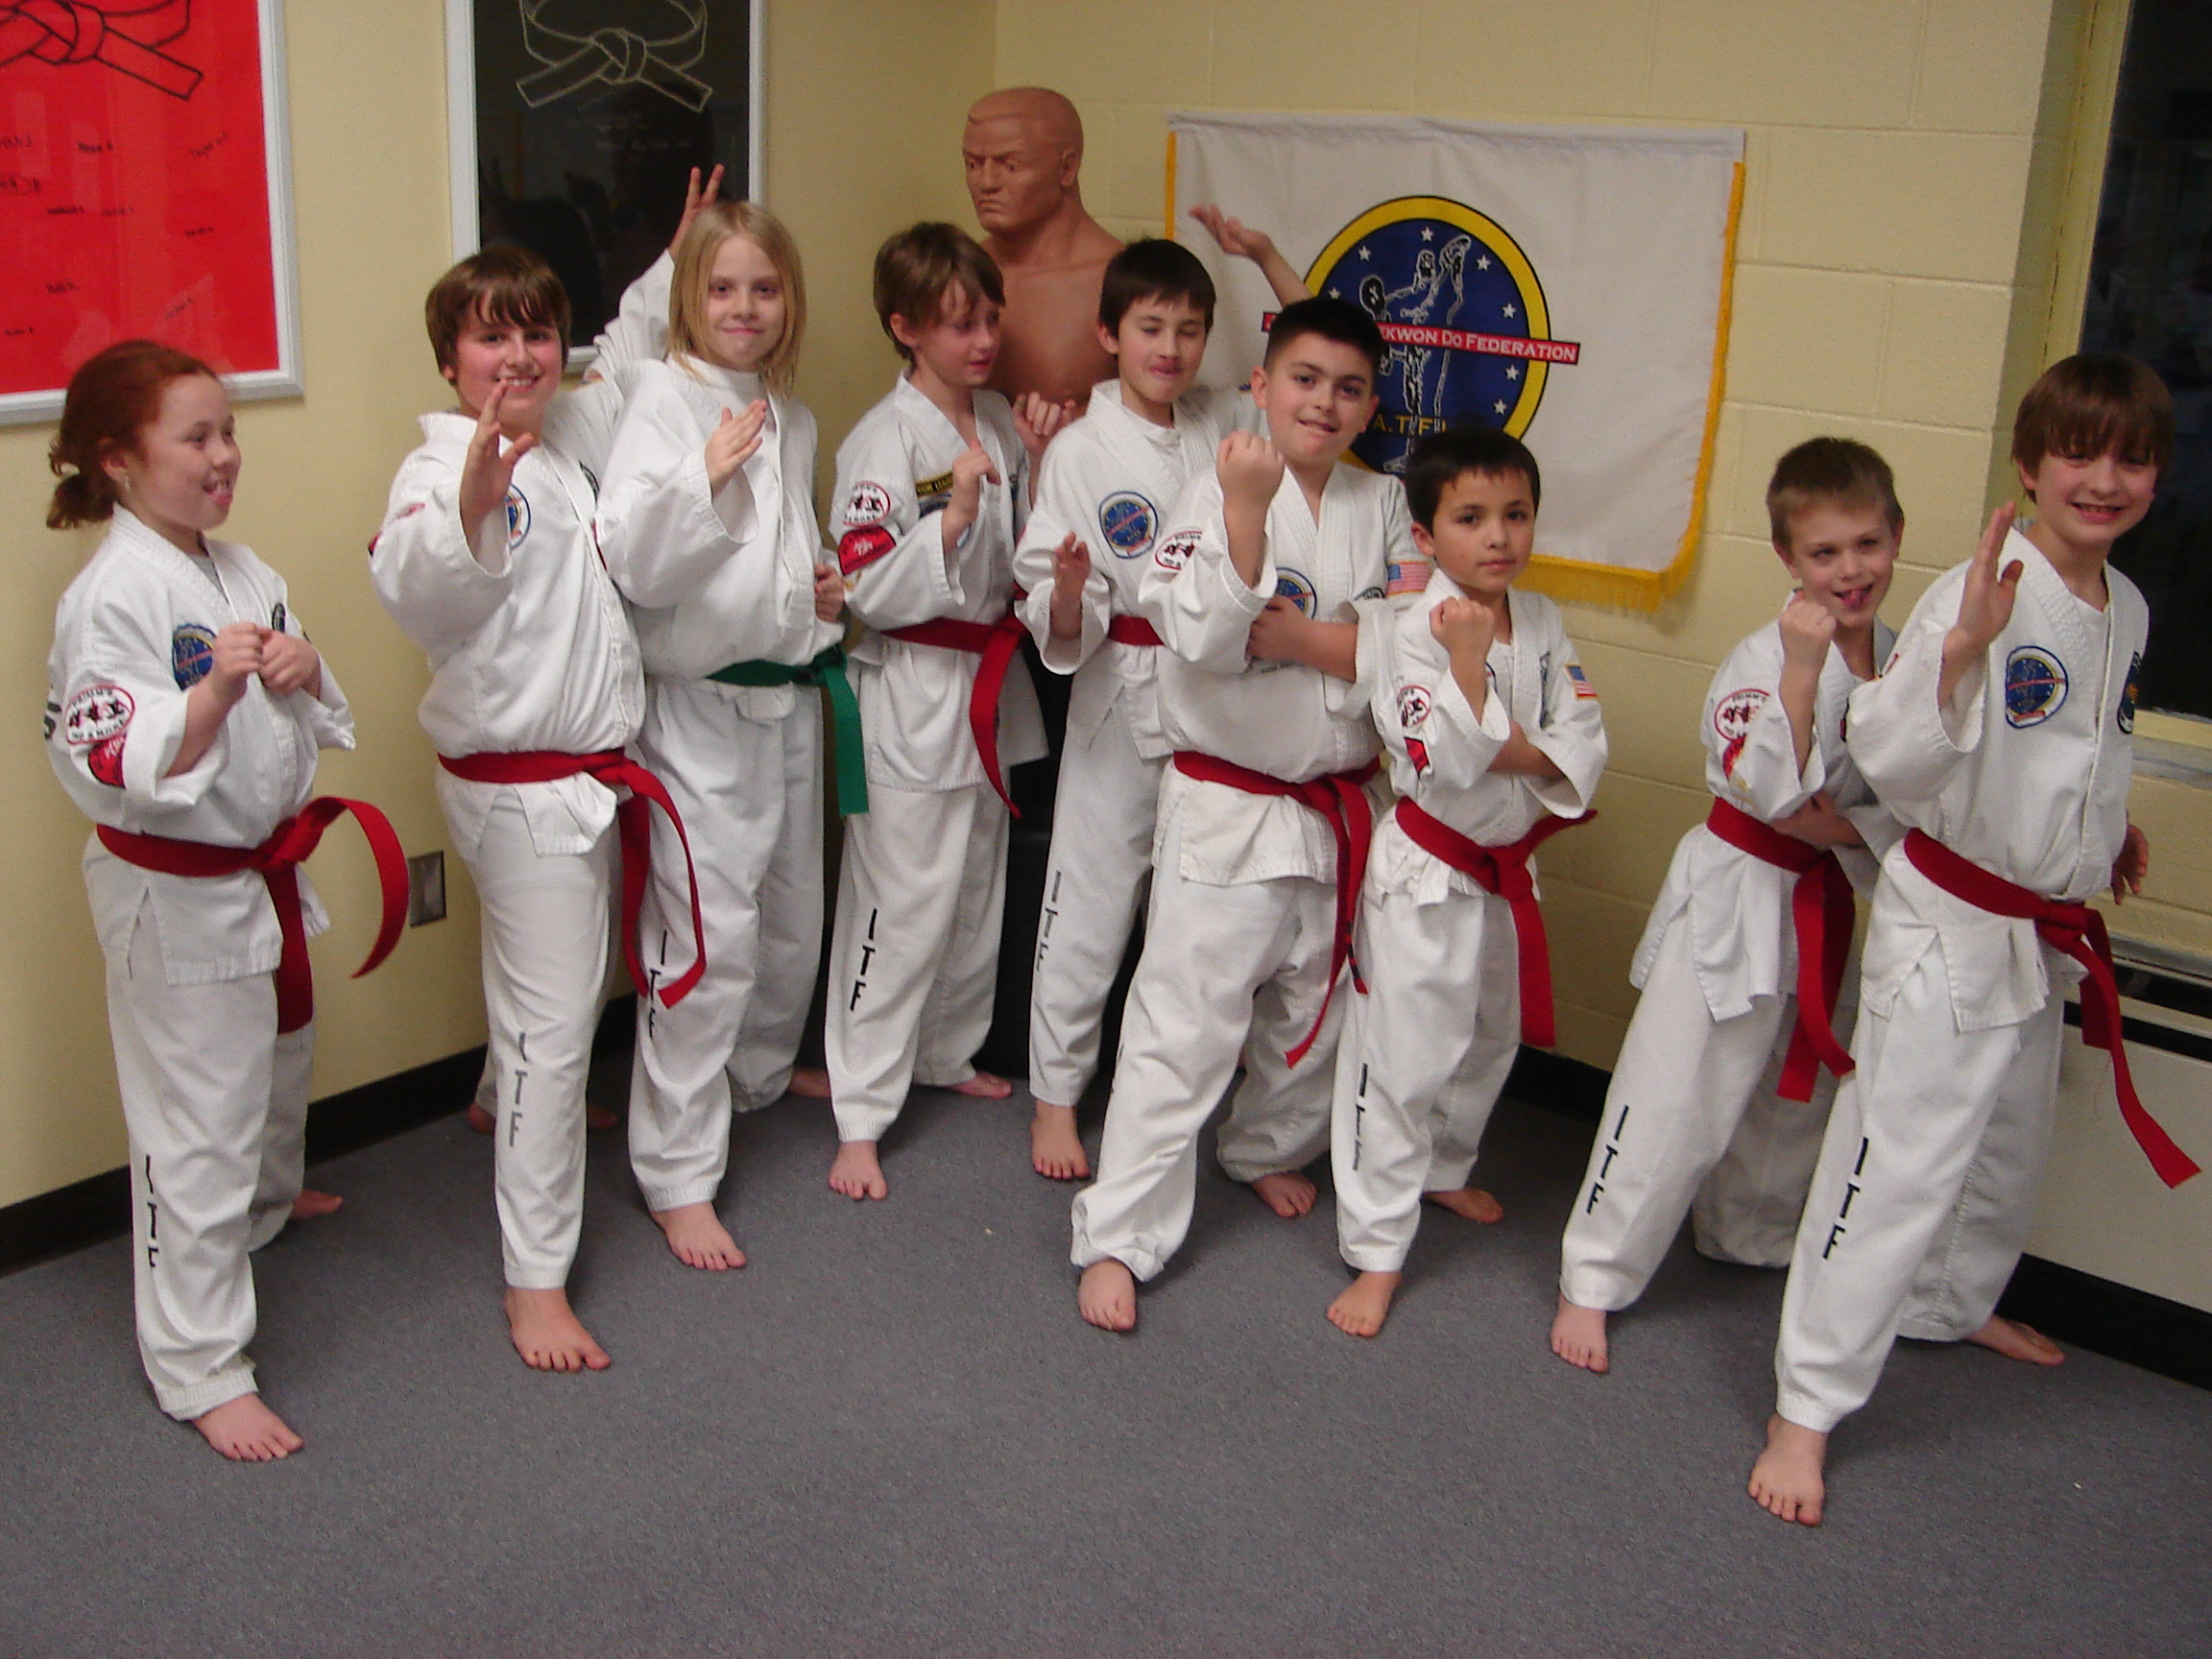 Red belts trying to be goofy